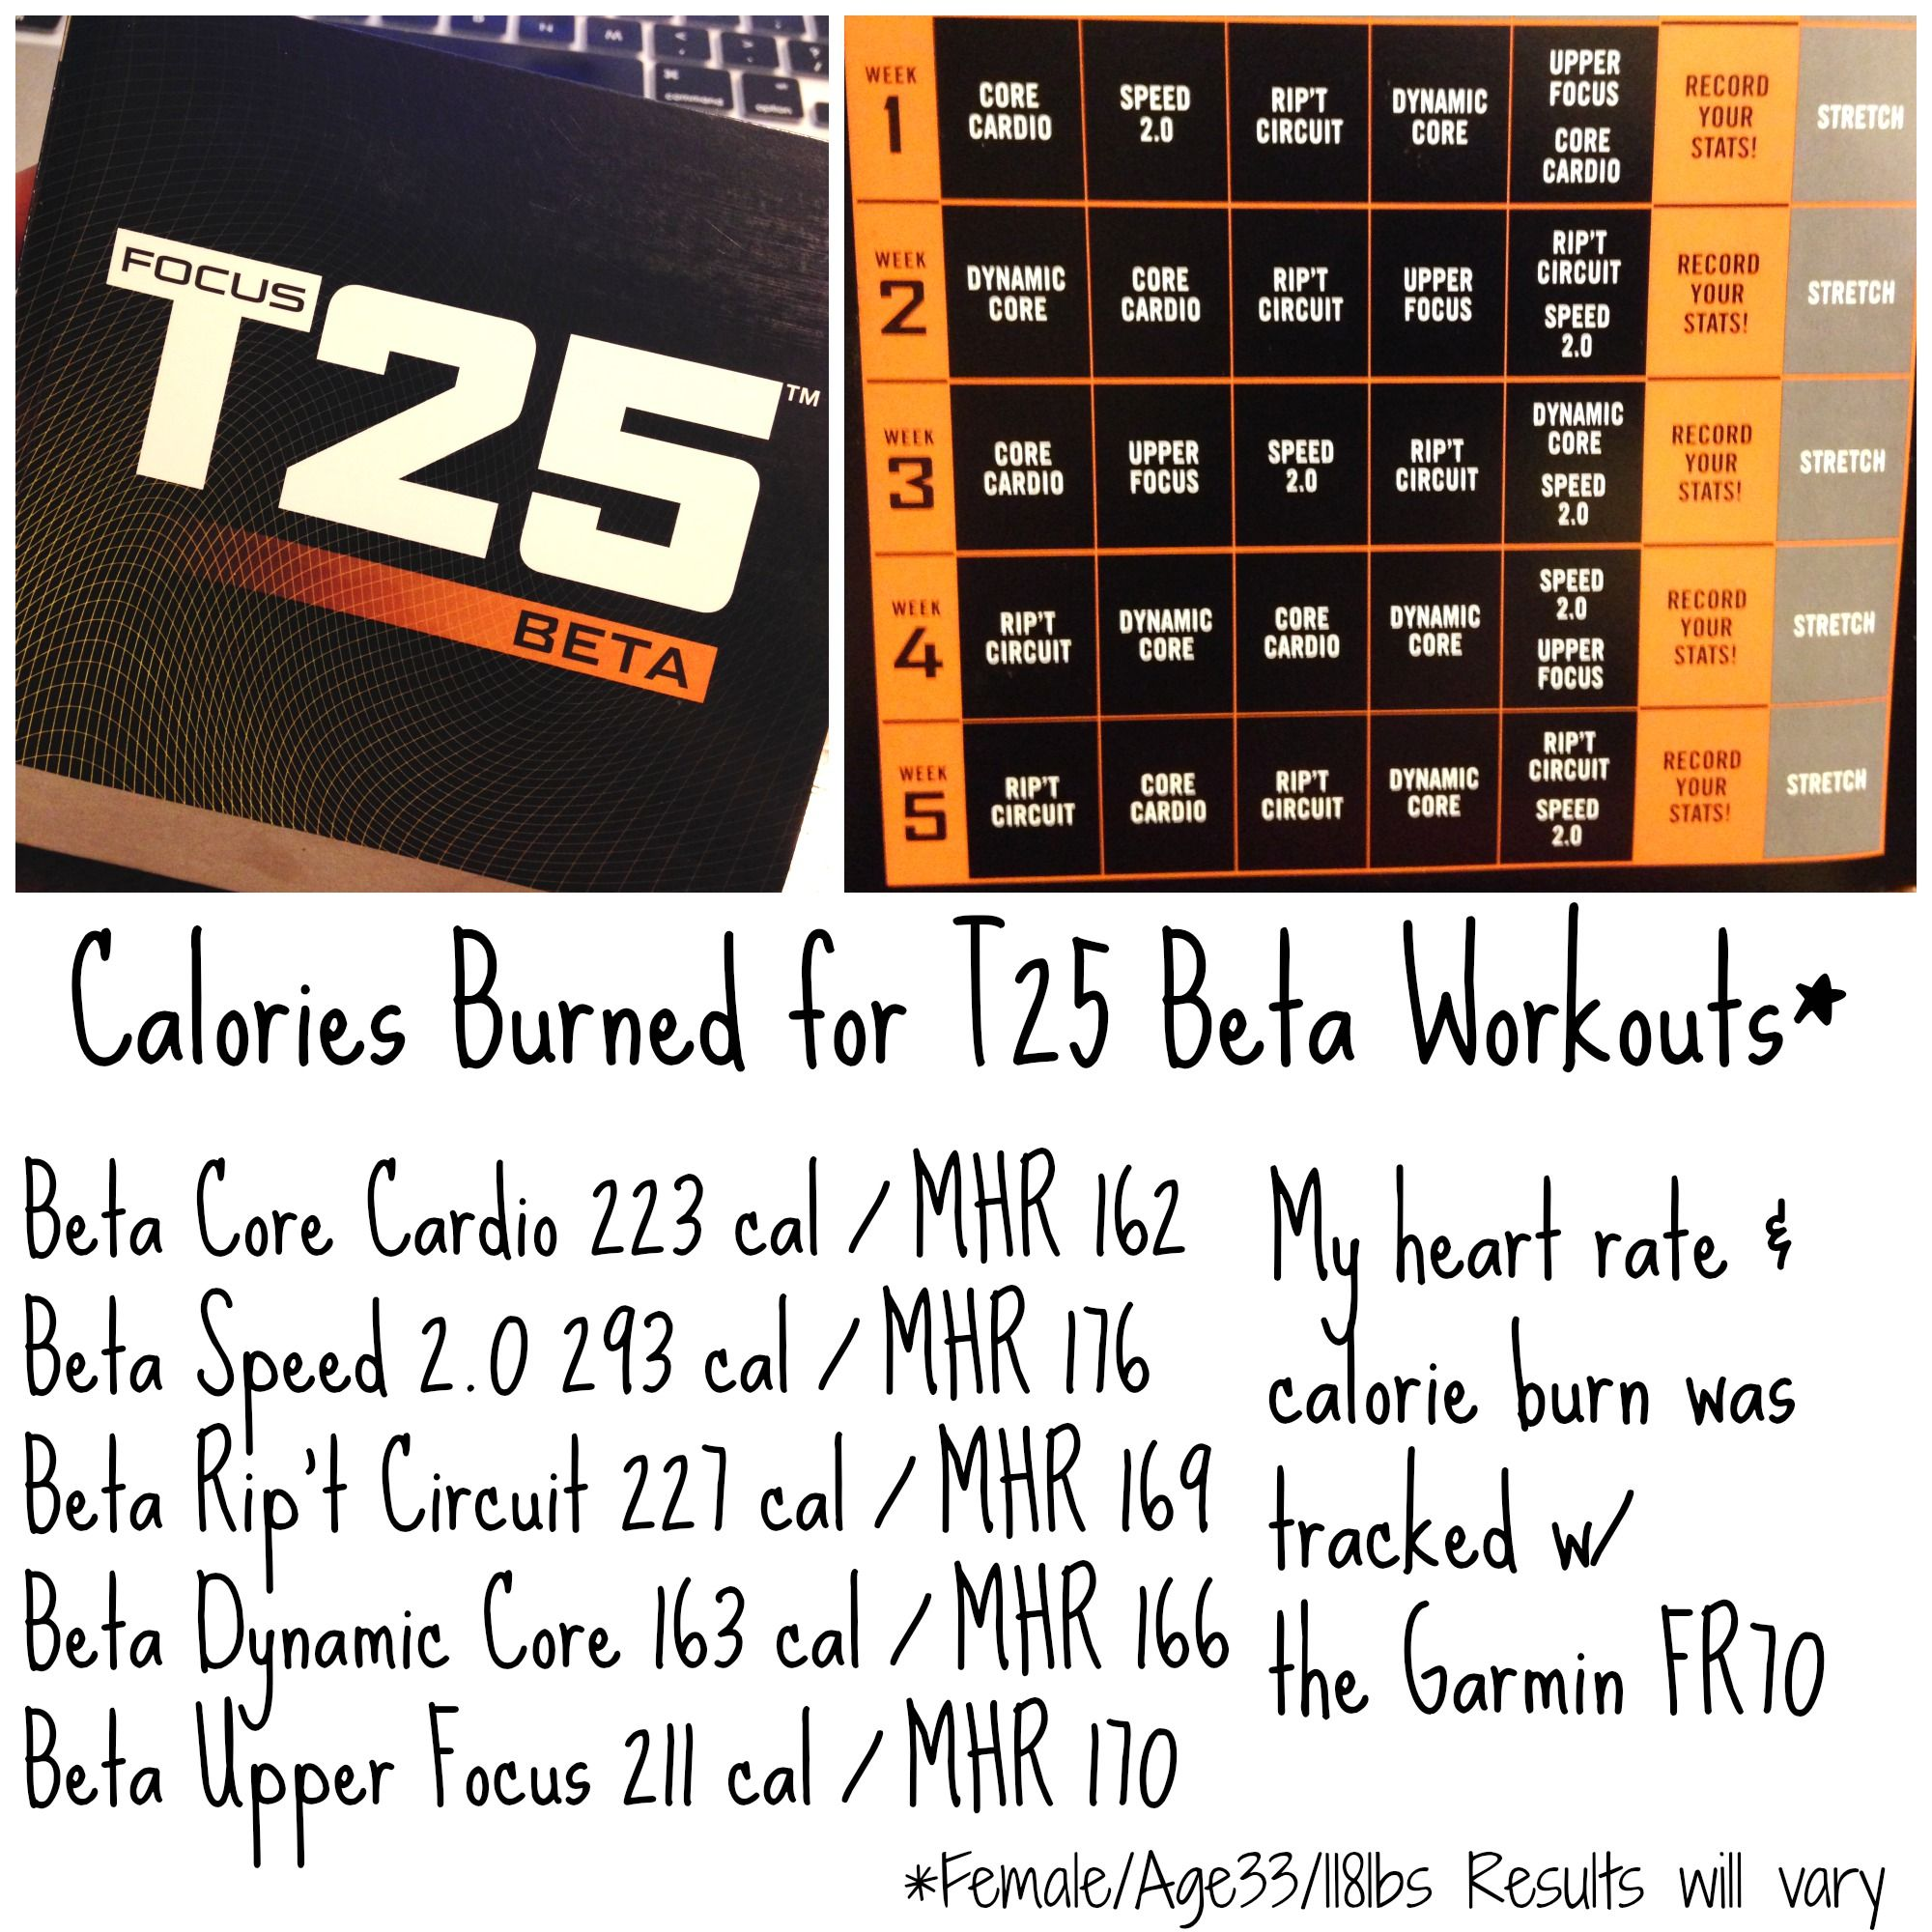 Here are the Calories burned for the Focus T25 Beta phase